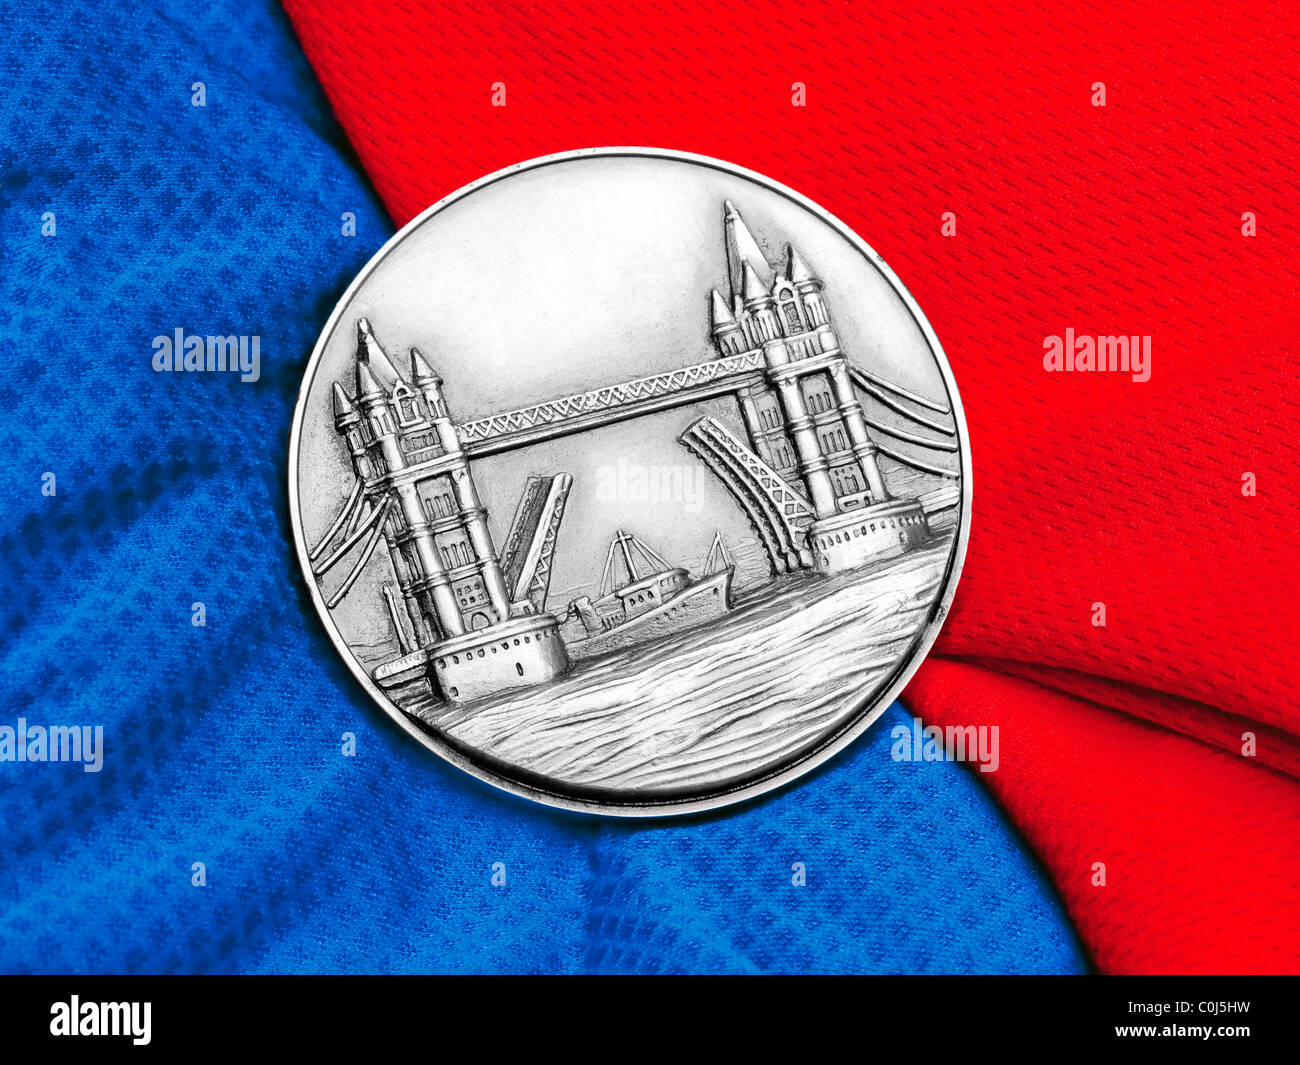 1981 The Gillette London Marathon finisher's medal - UK. - Stock Image